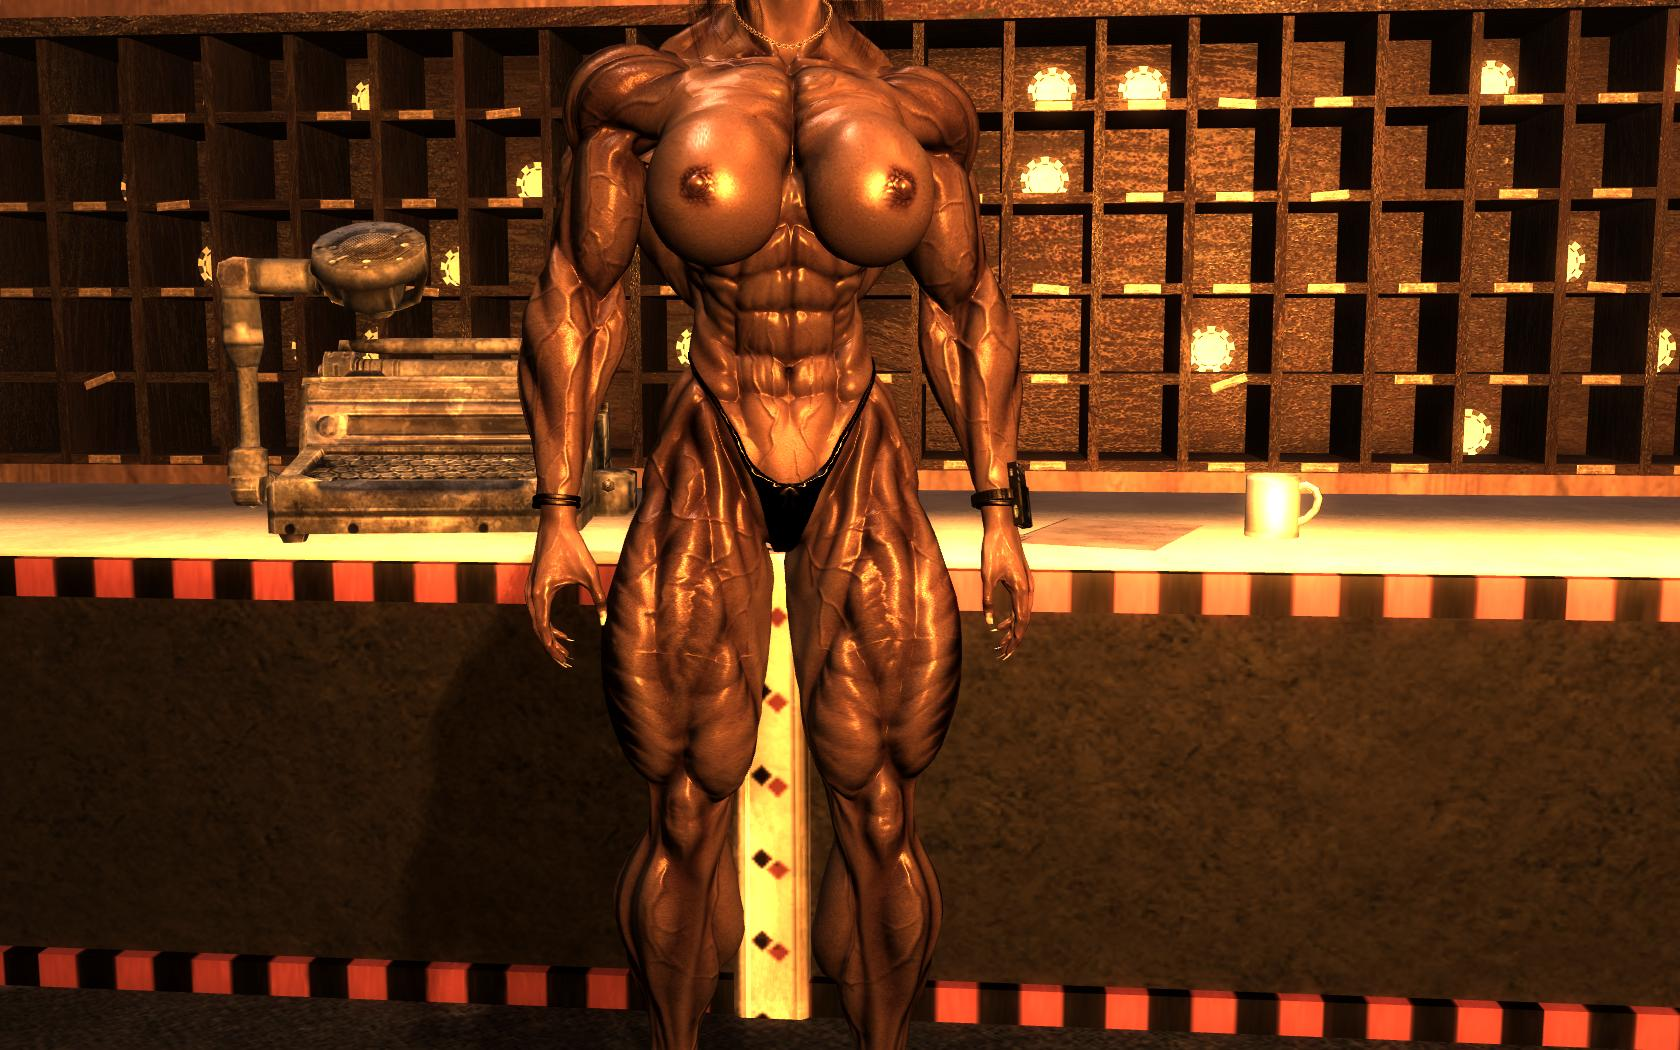 Fallout nude body replacer smut super hoe